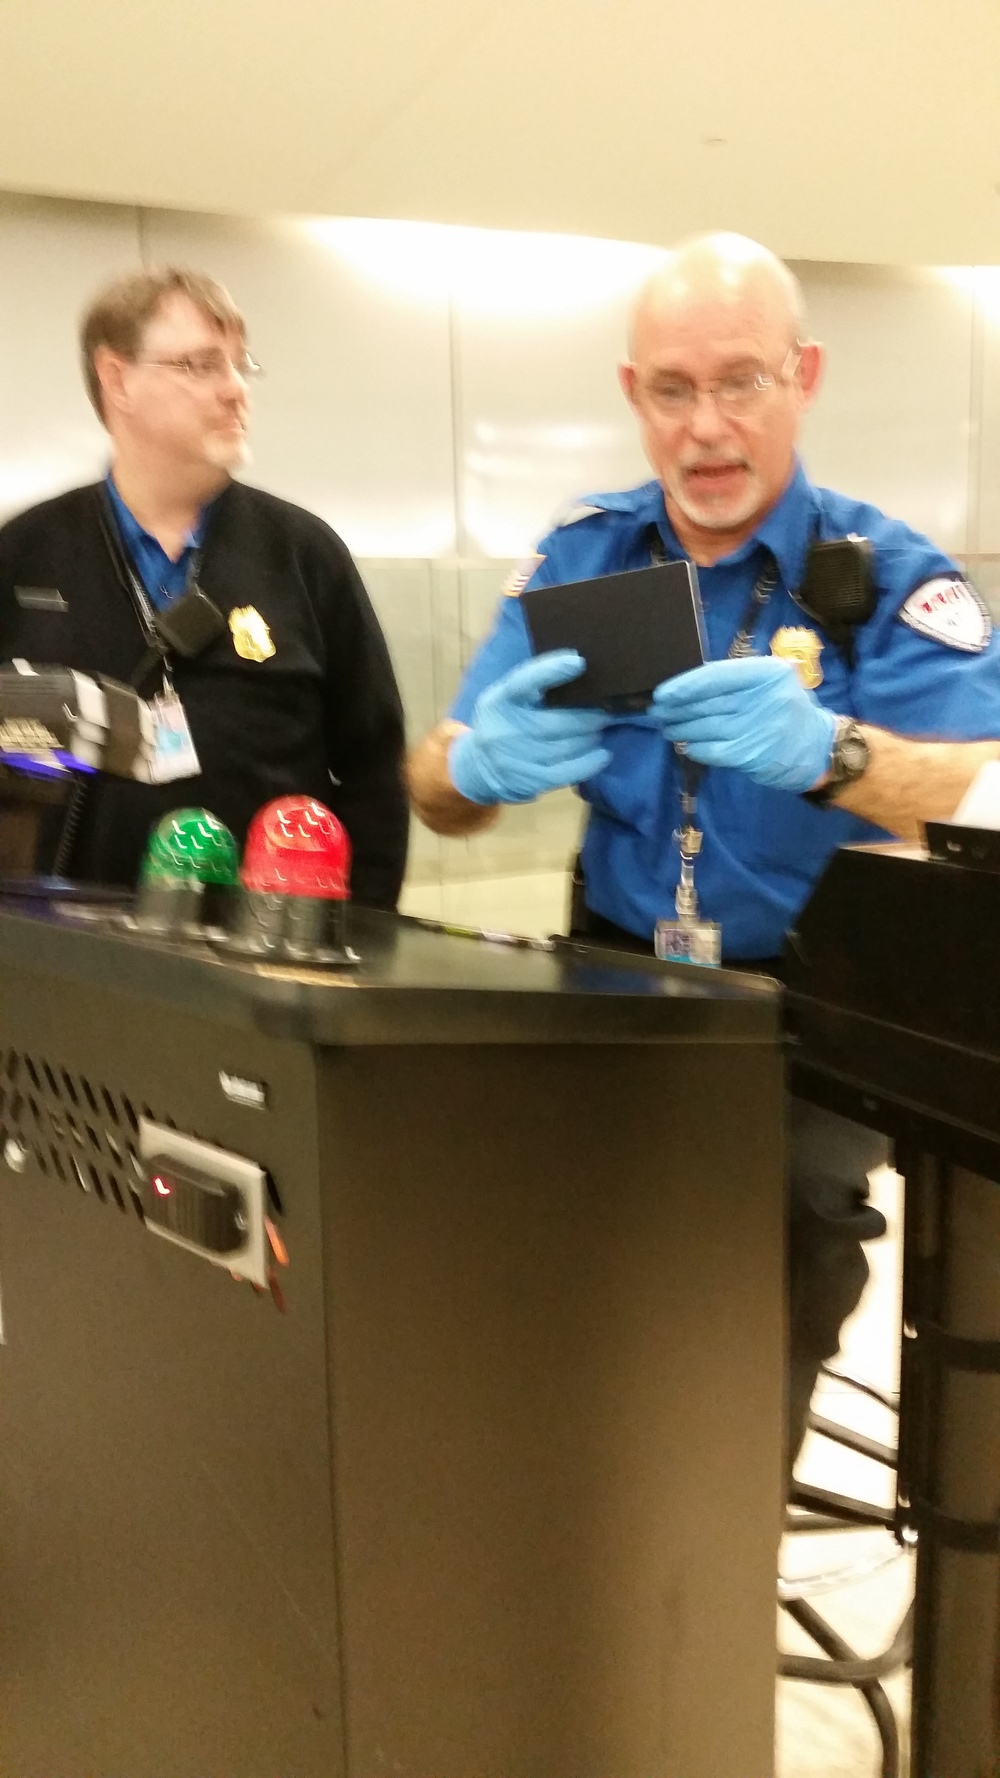 Emerson meets the TSA Agent for check-in.